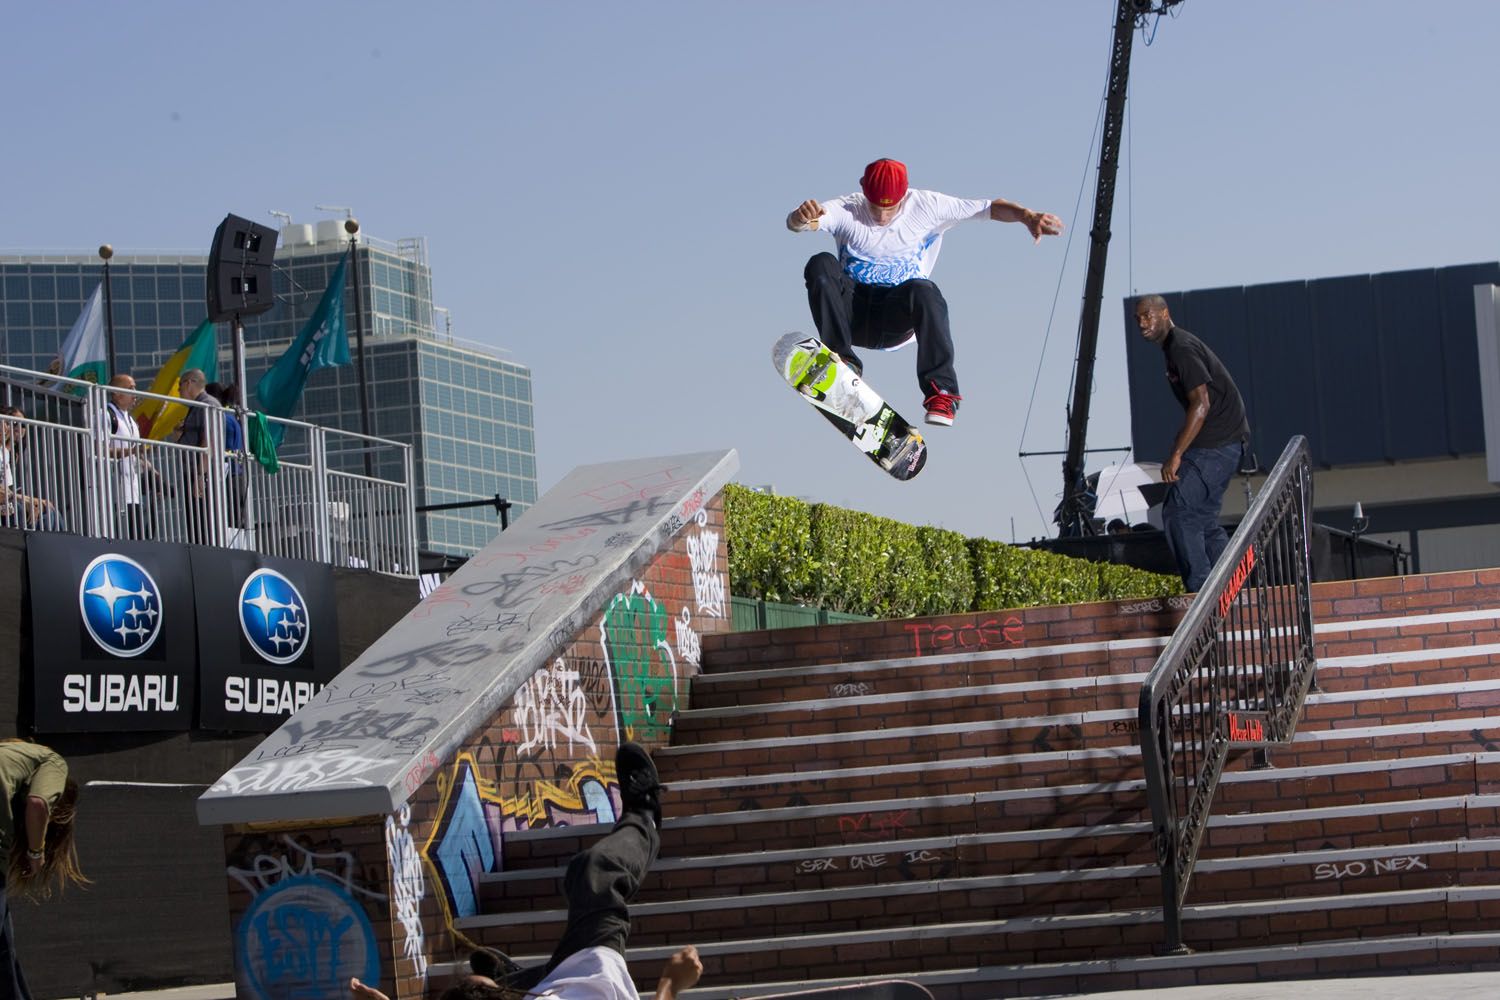 Ryan Sheckler competes in the qualifying round in Skateboard Street at X Games 14.